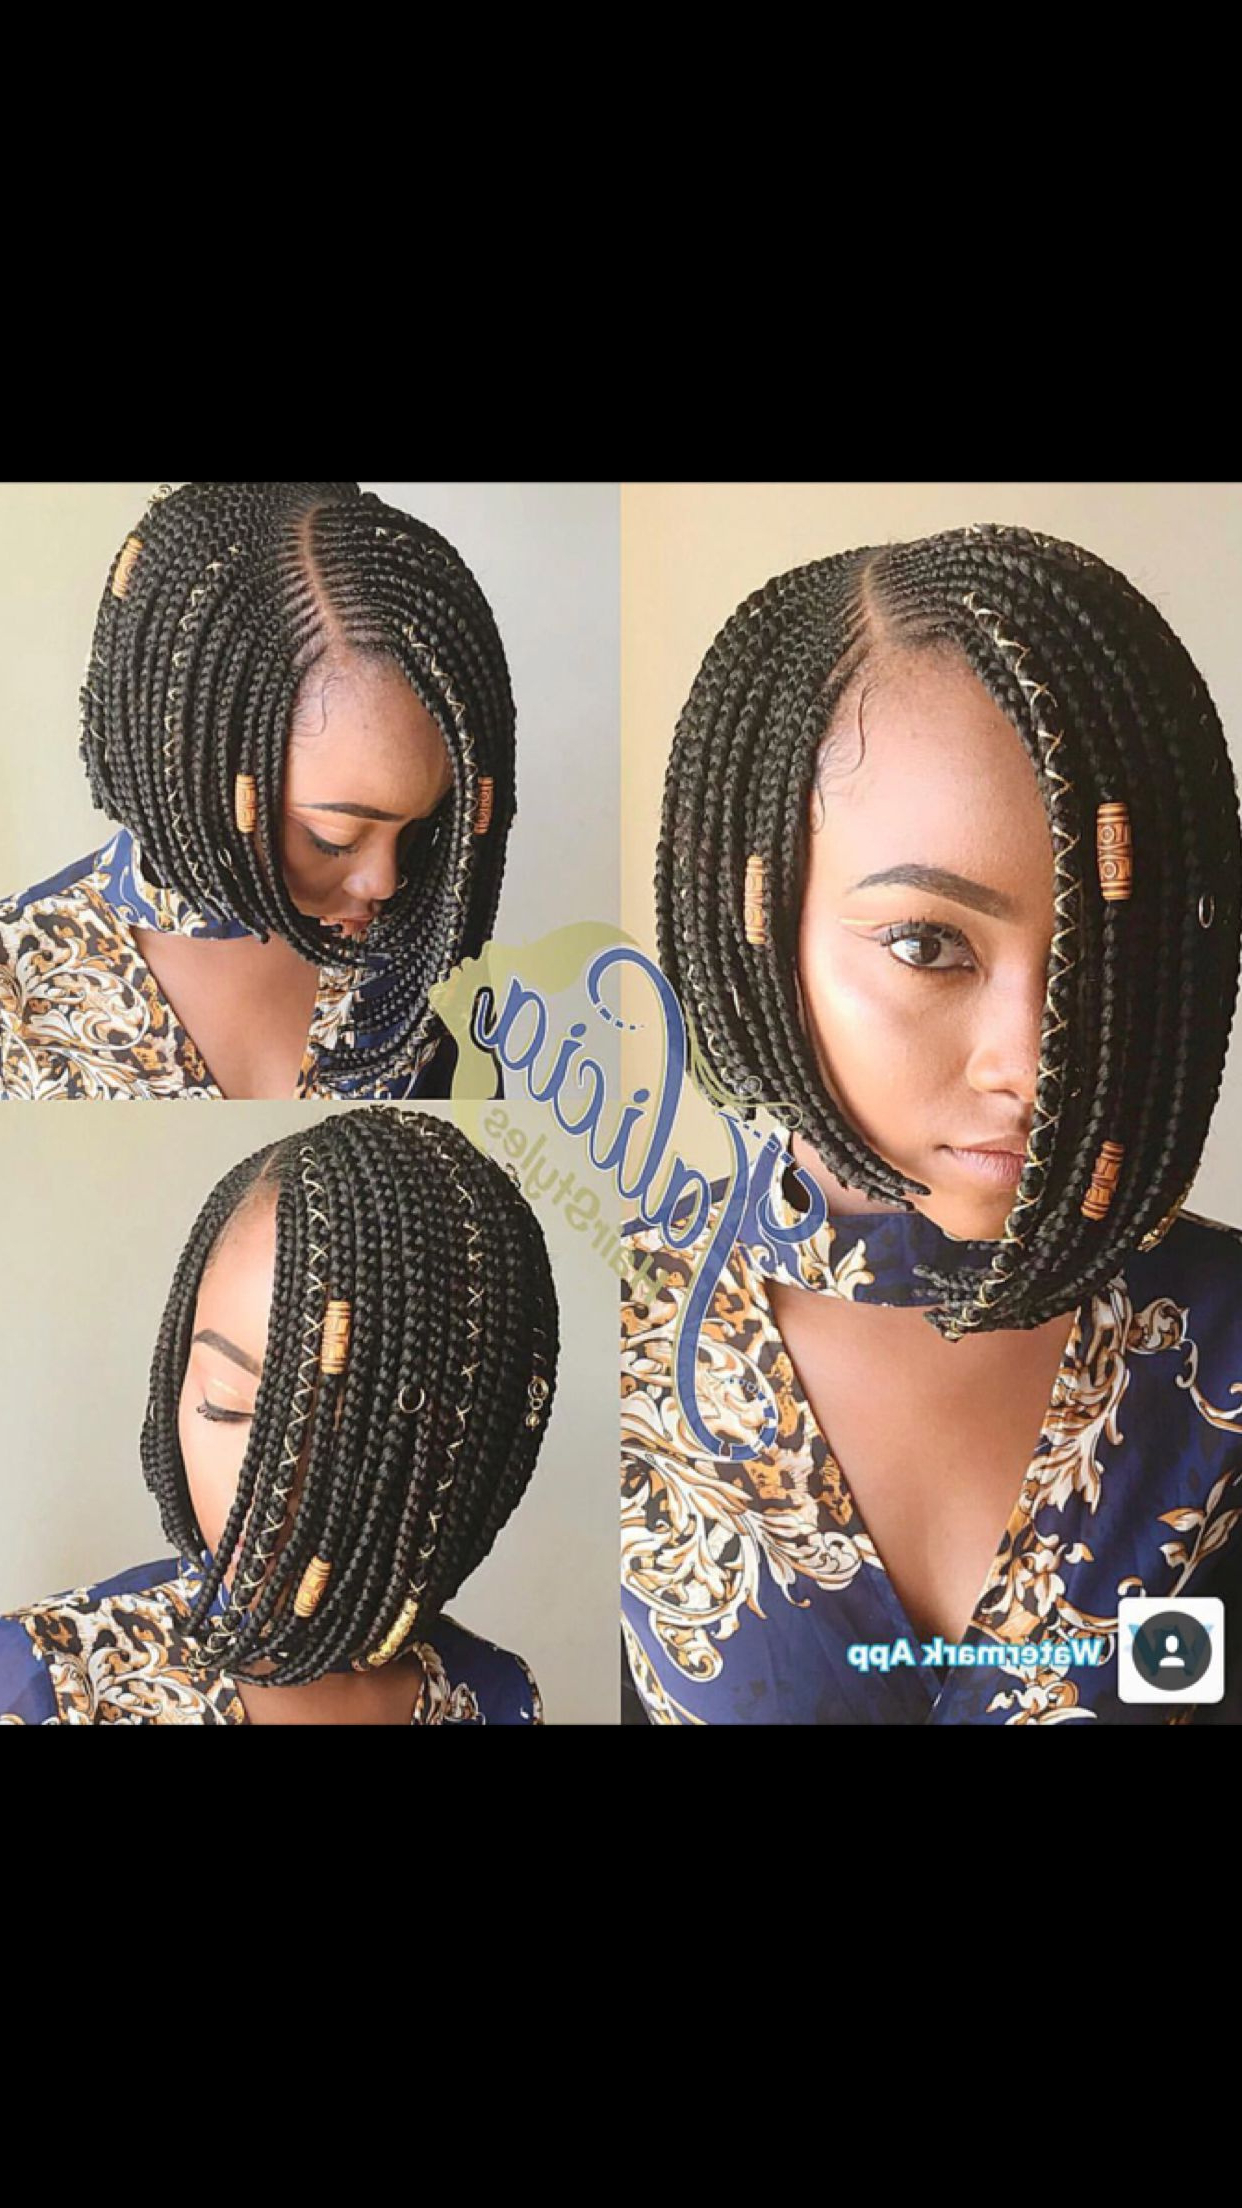 Well Known Bob Braid Hairstyles With A Bun Throughout Hairstyles : Curvy Ghana Braids With Crown Bun Inspiring Bob (View 4 of 20)